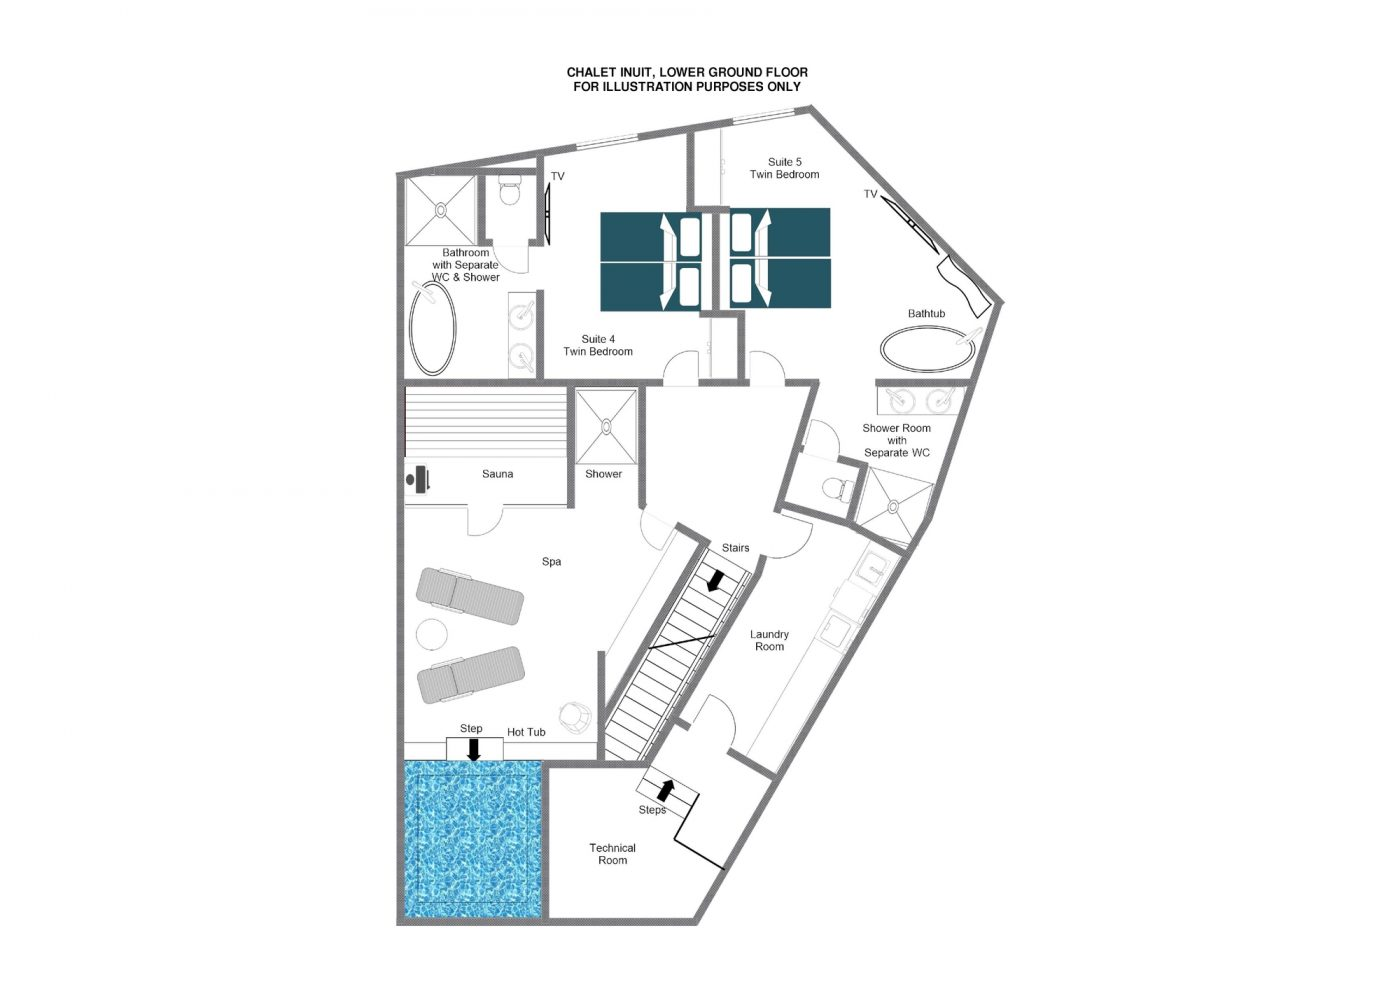 Chalet Inuit (Contactless Chalet Catering) Val d'Isere Floor Plan 3